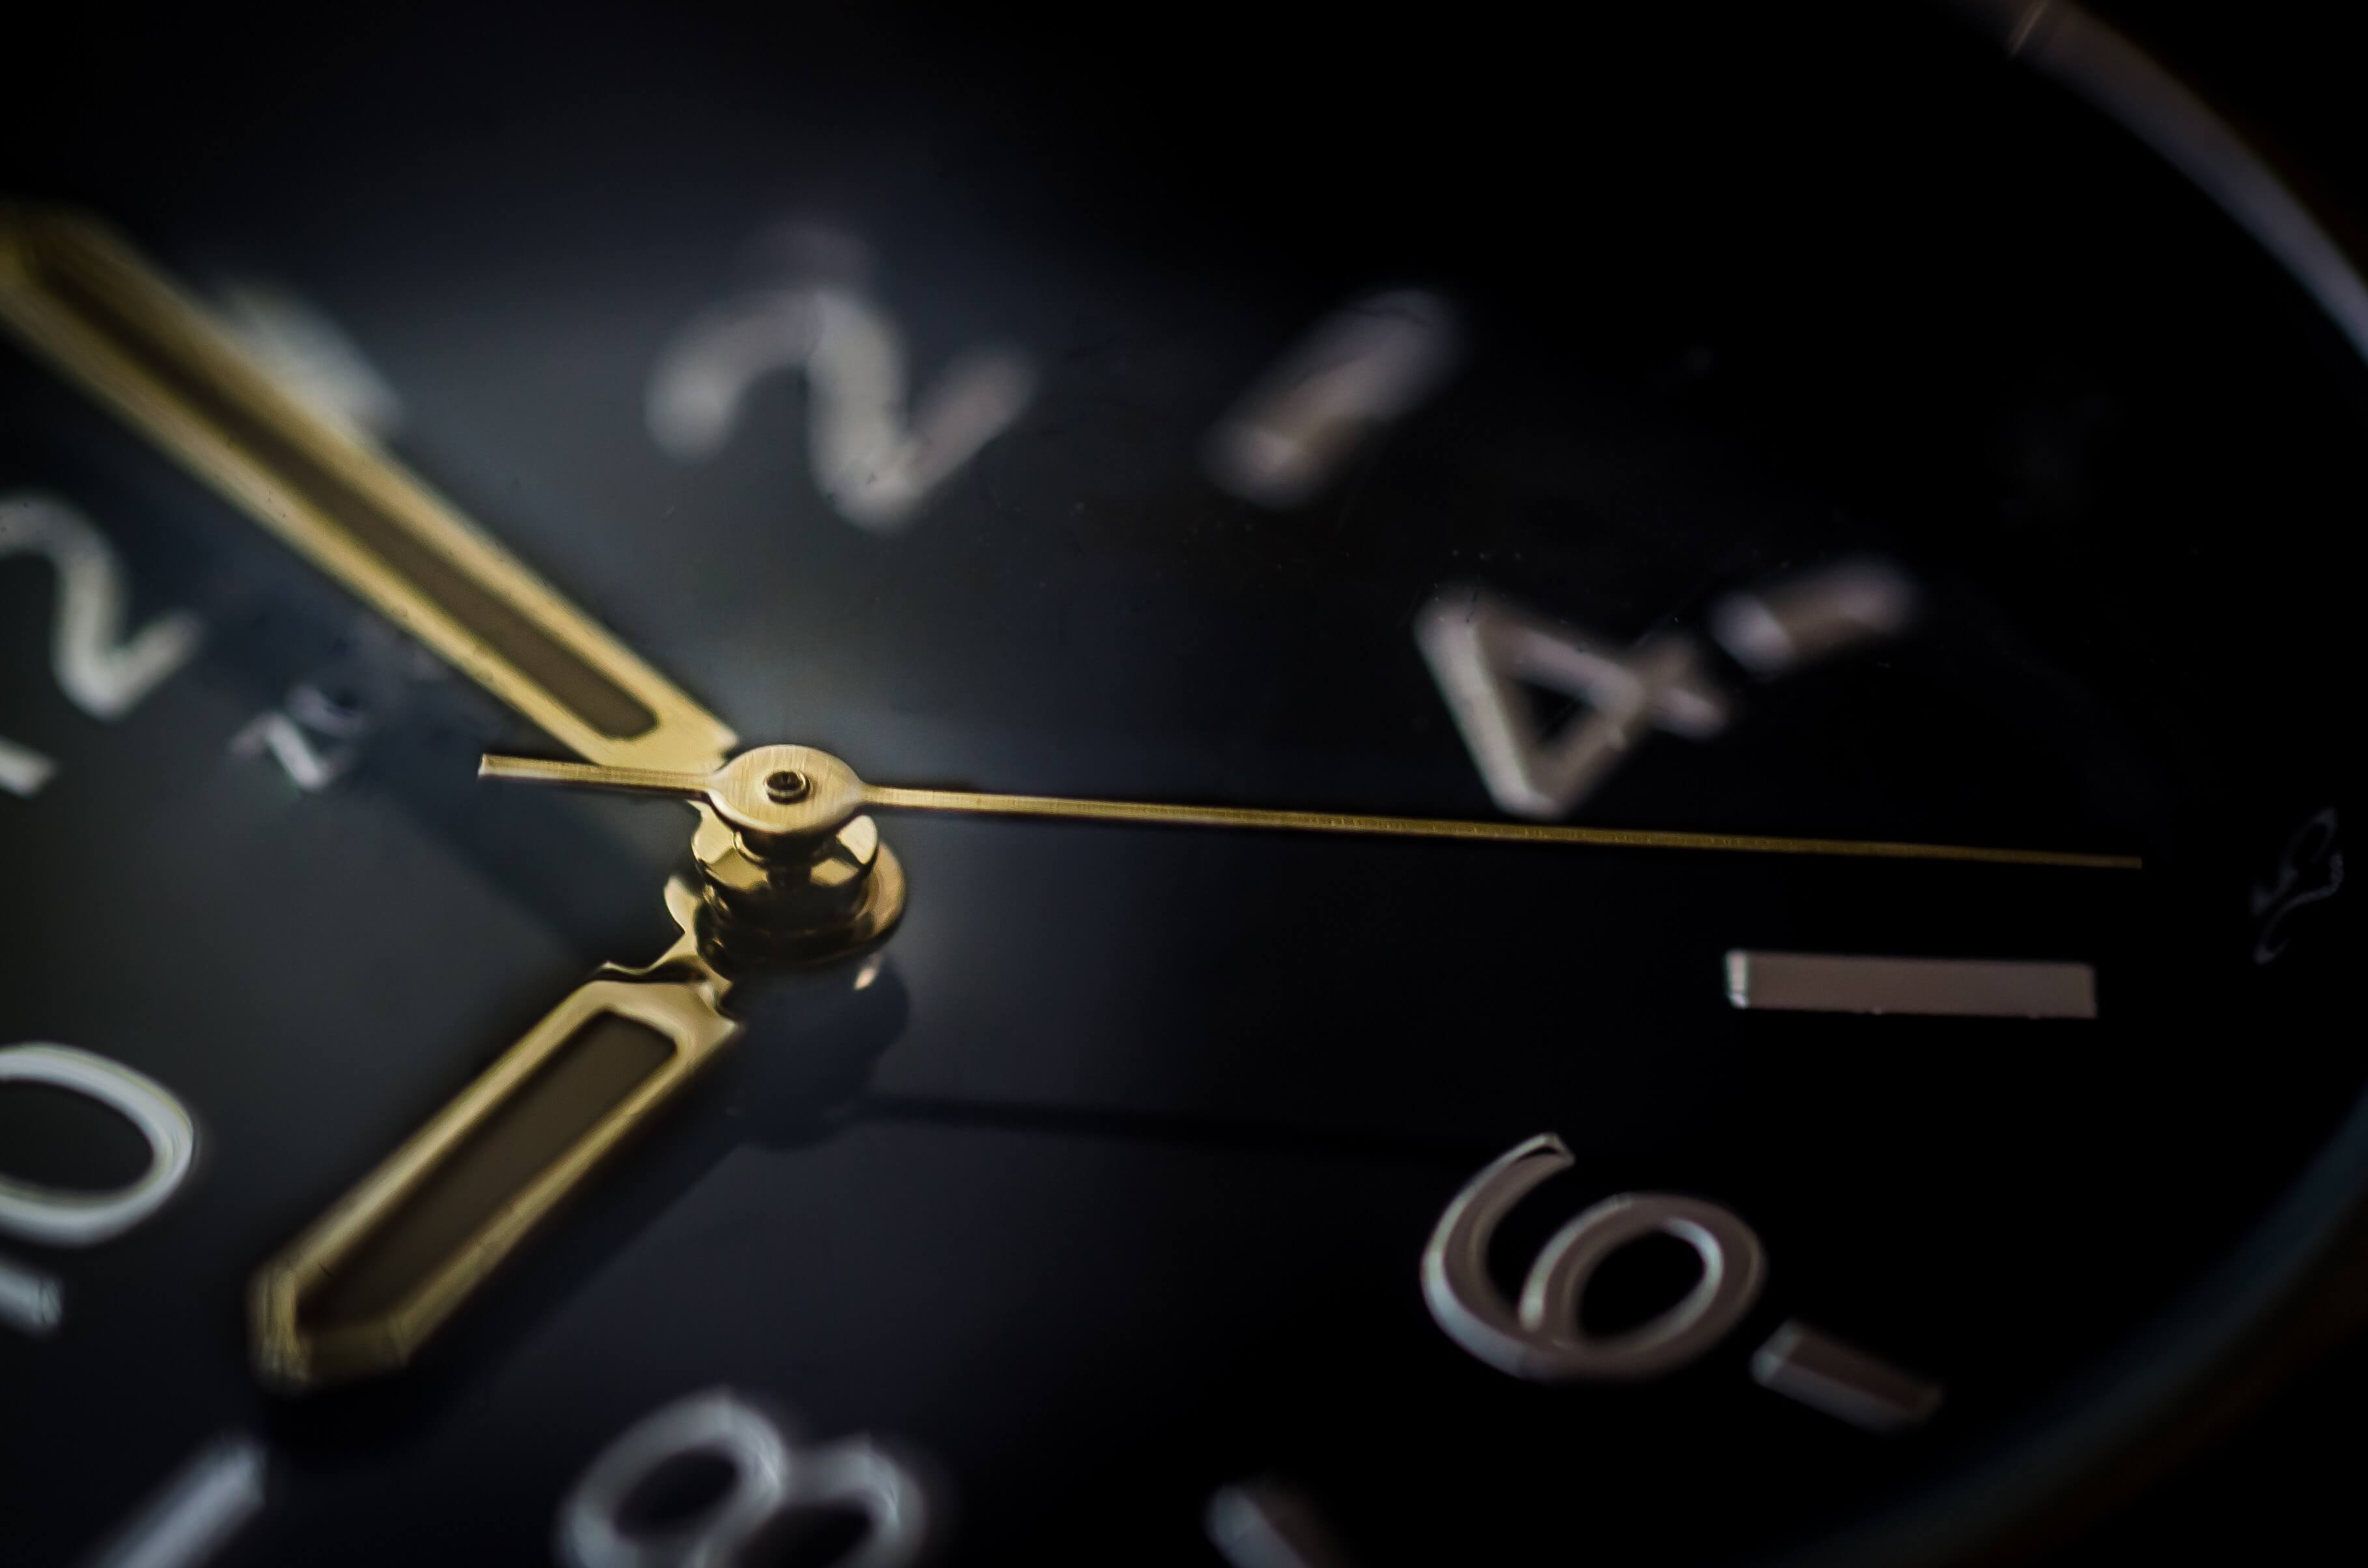 clock-hours-minutes-9352